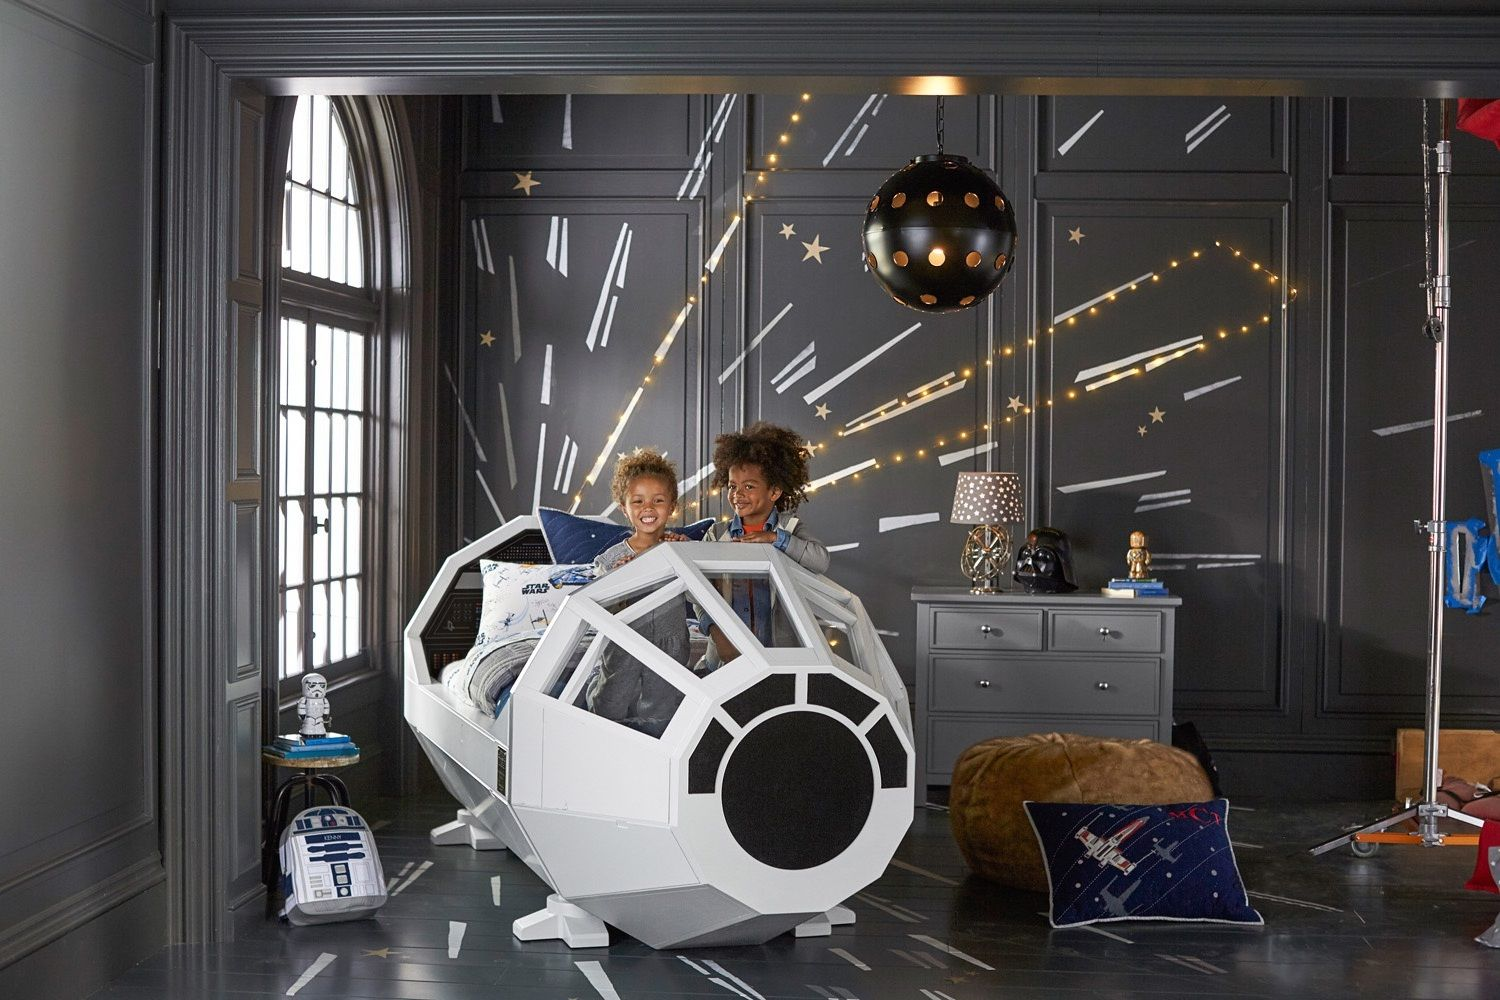 Breathtaking Star Wars Home Decor   Home   Pinterest   Apartment     Breathtaking Star Wars Home Decor